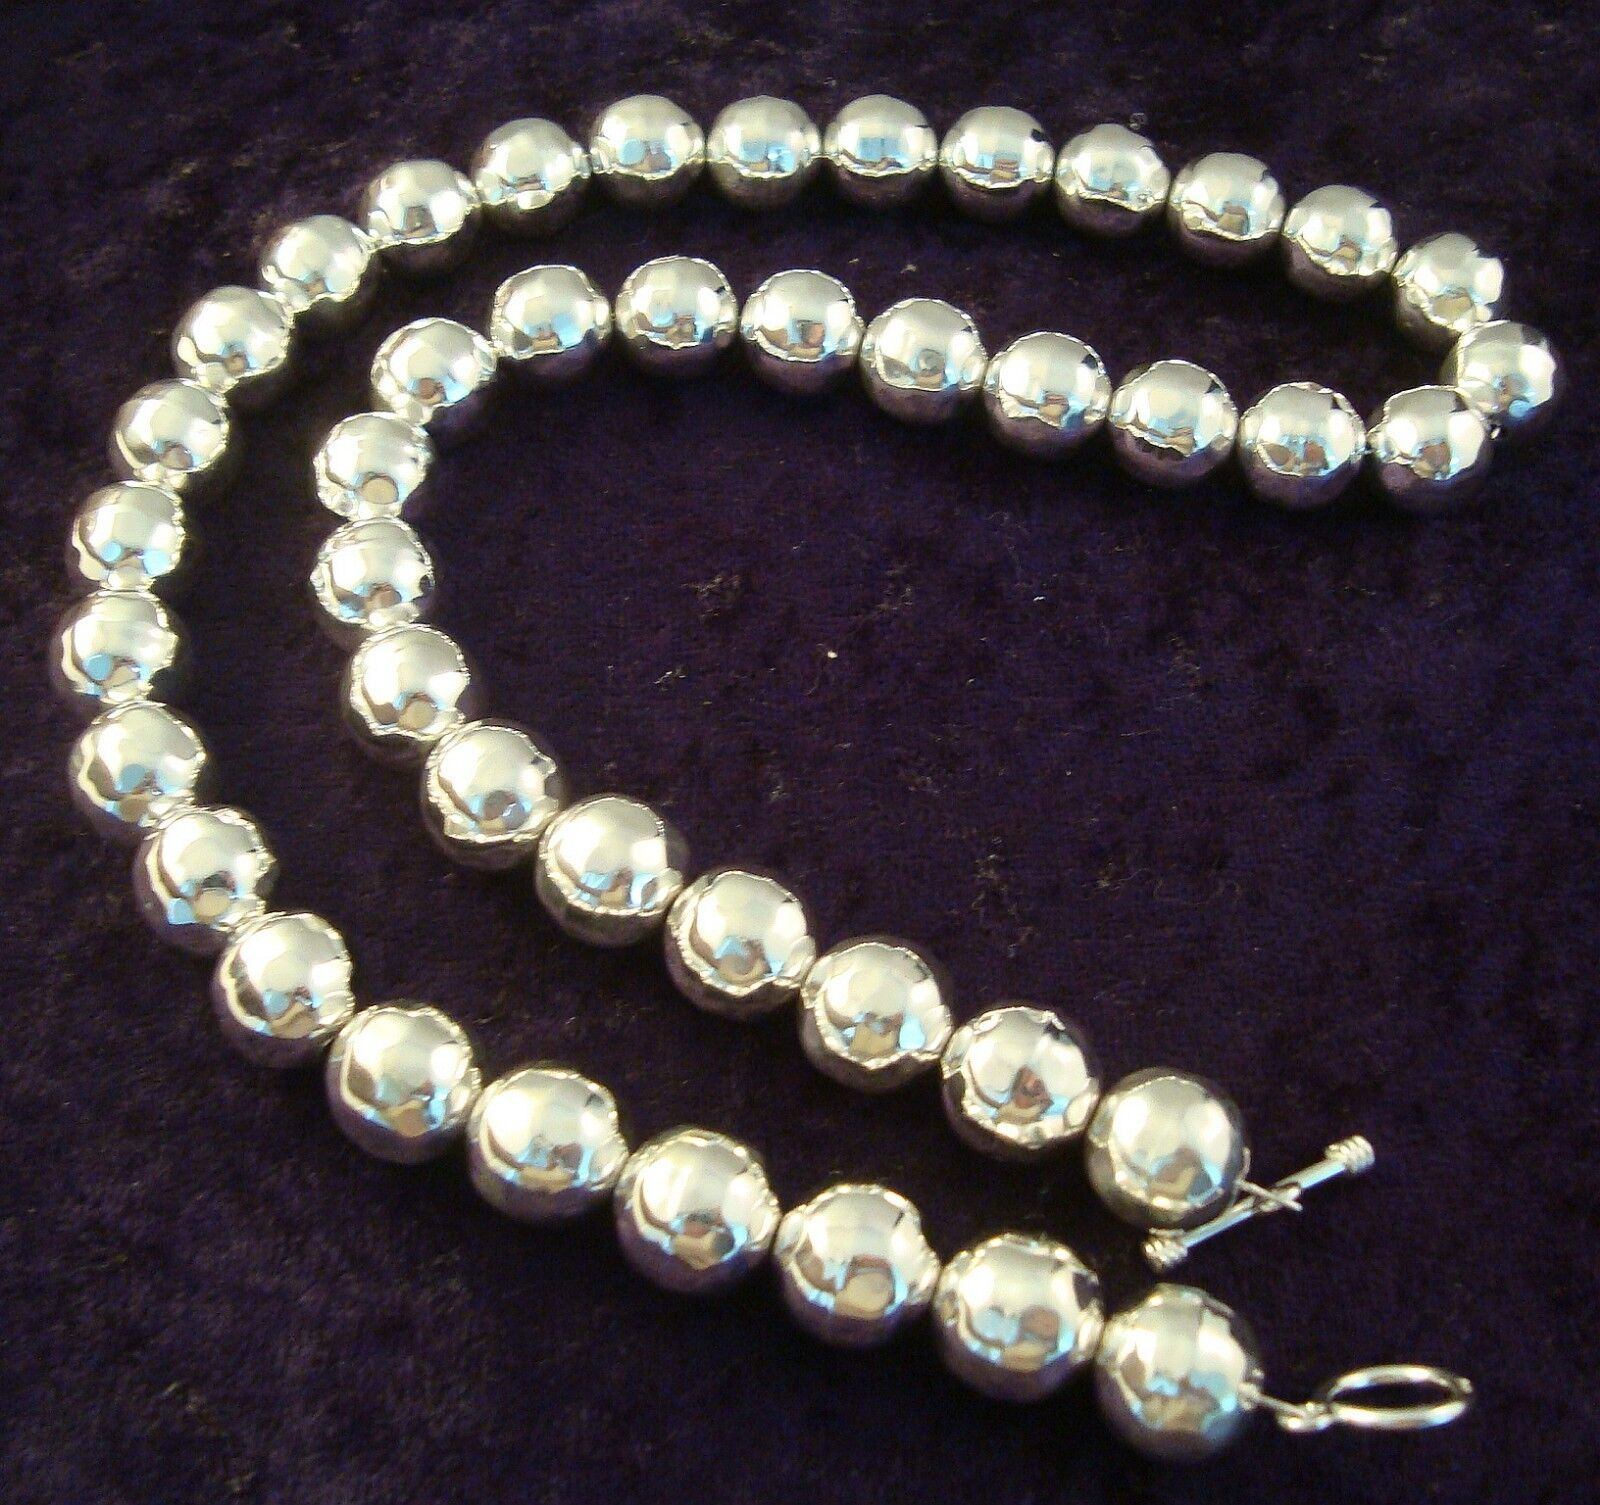 Beads Necklace Beads: TAXCO MEXICAN STERLING SILVER HAMMERED BEADED BEAD